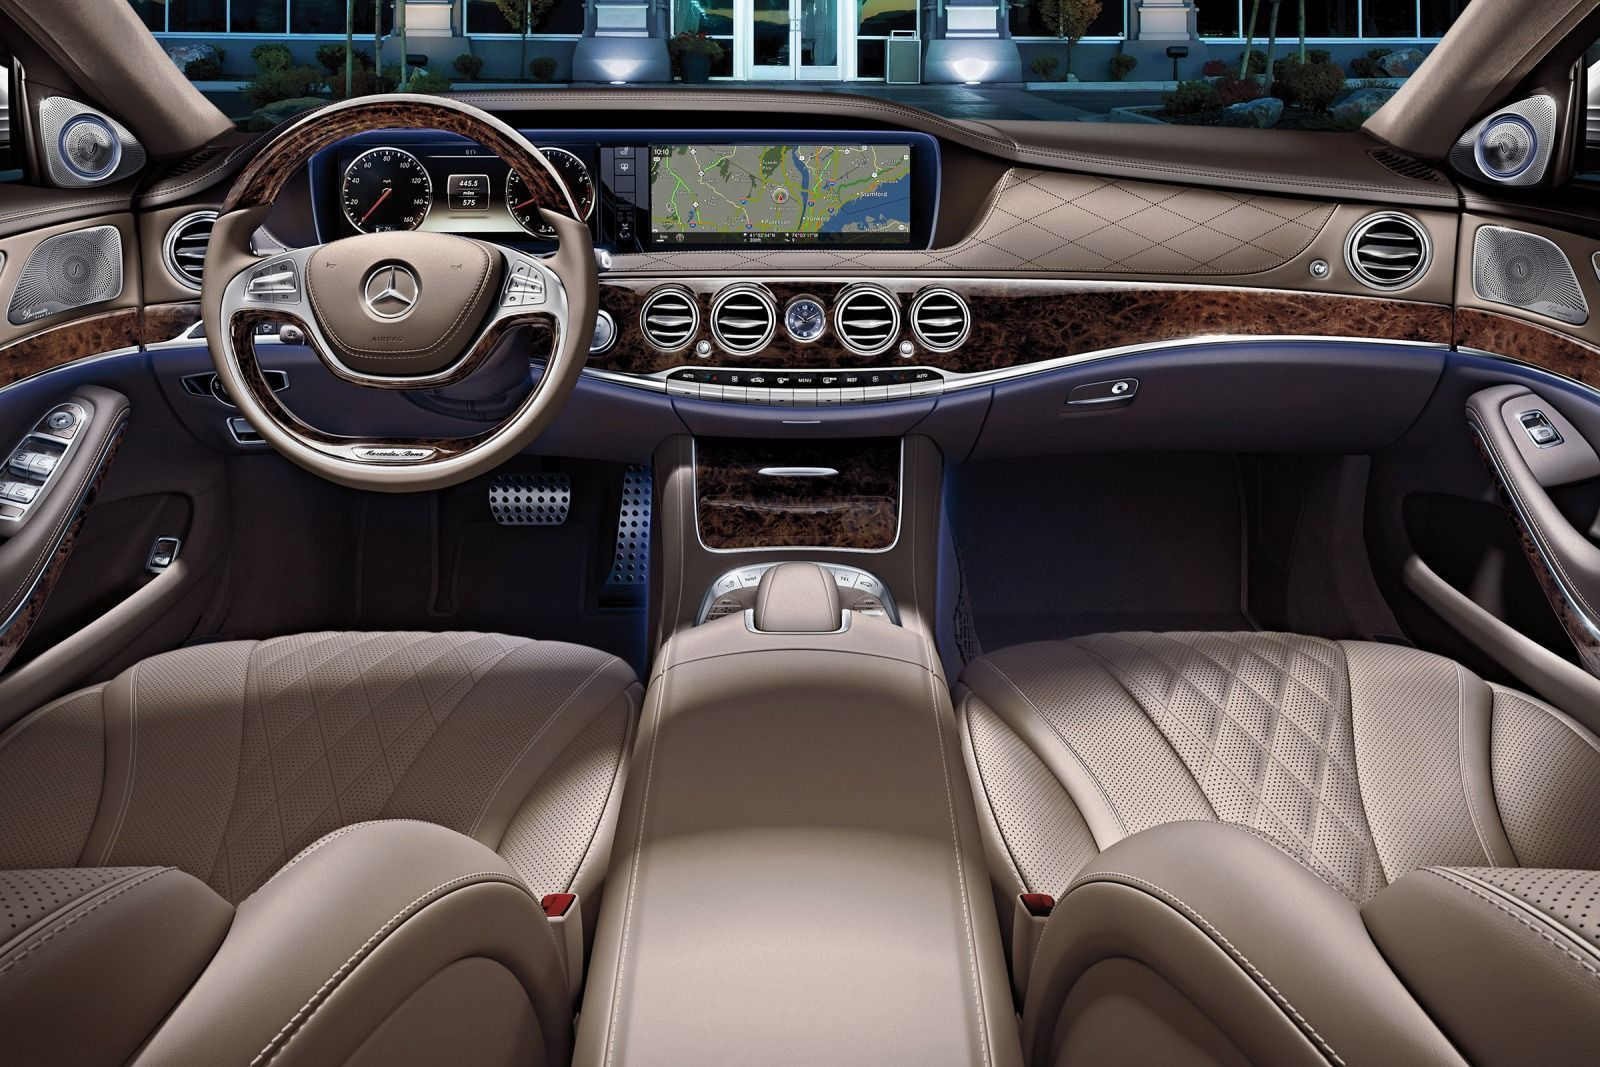 2015 s550 mercedes benz sedan interior